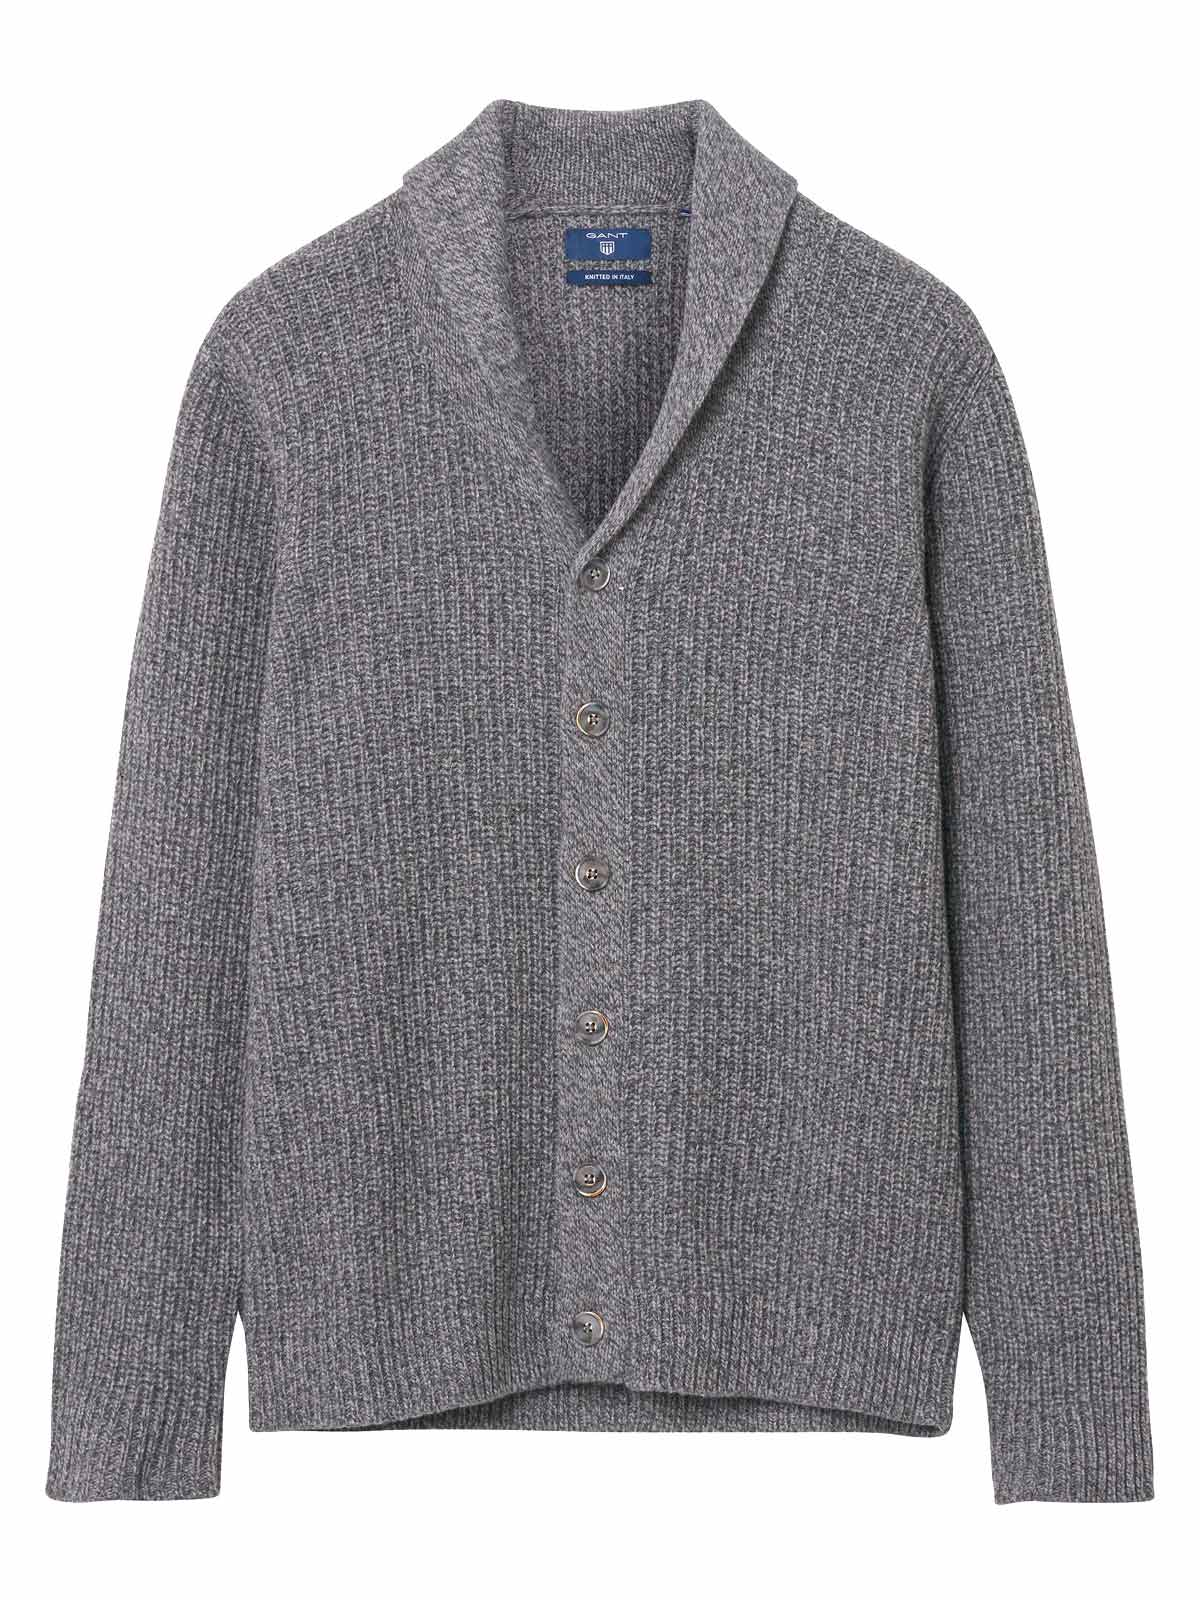 Picture of GANT | Men's Chunky Shawl Cardigan